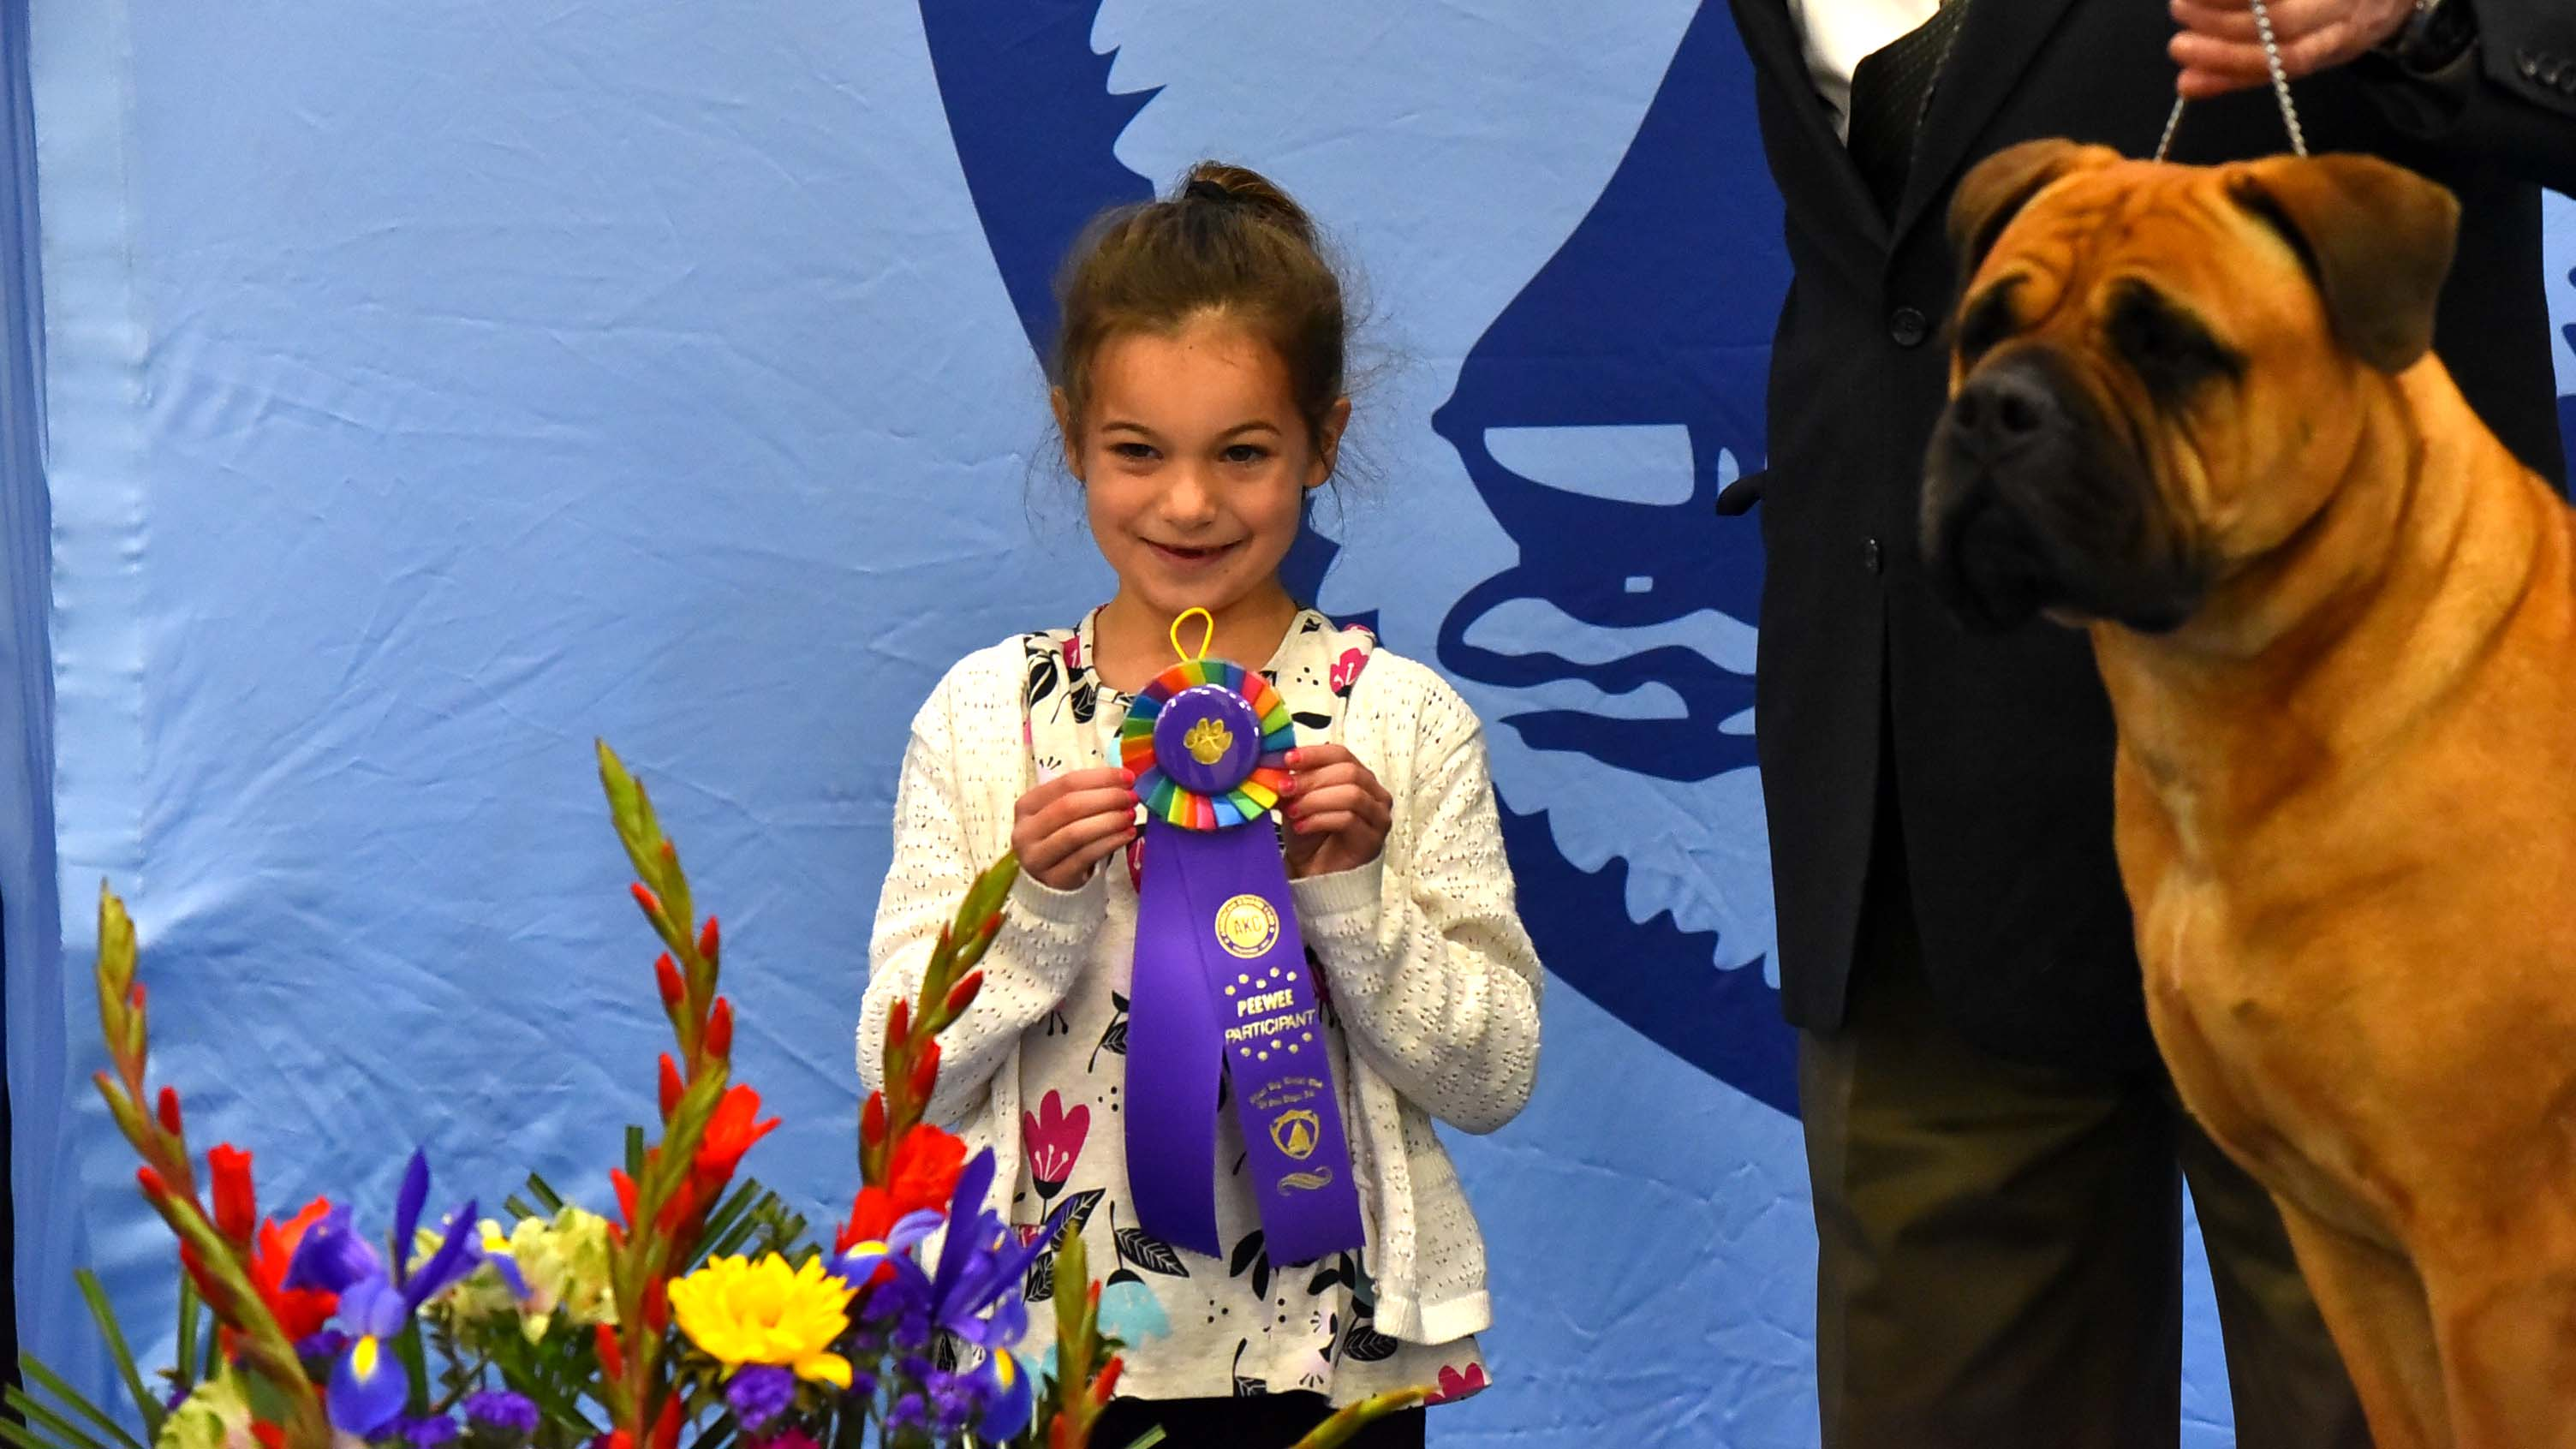 Savannah Mechling, a junior handler of her 140-pound bullmastiff, proudly shows off her ribbon at the Silver Bay Kennel Cub show.